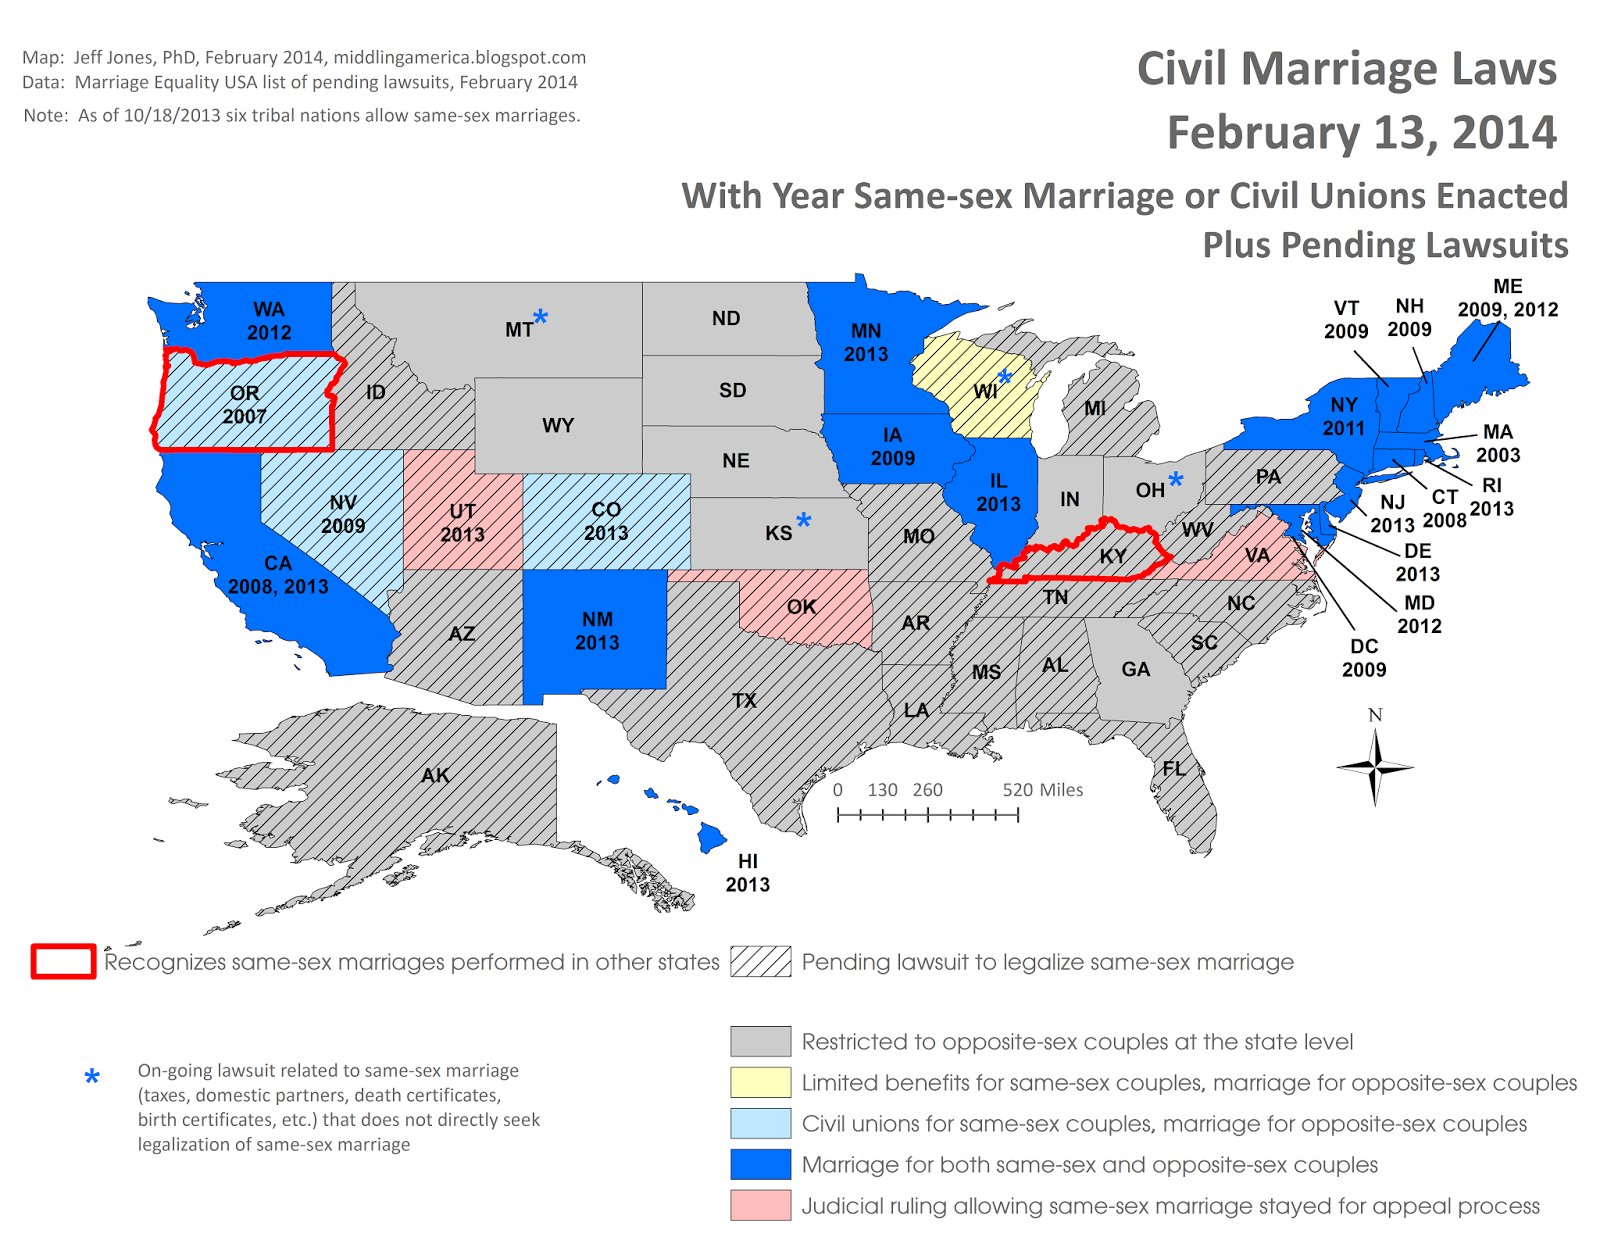 States that allow gay marriage or civil unions